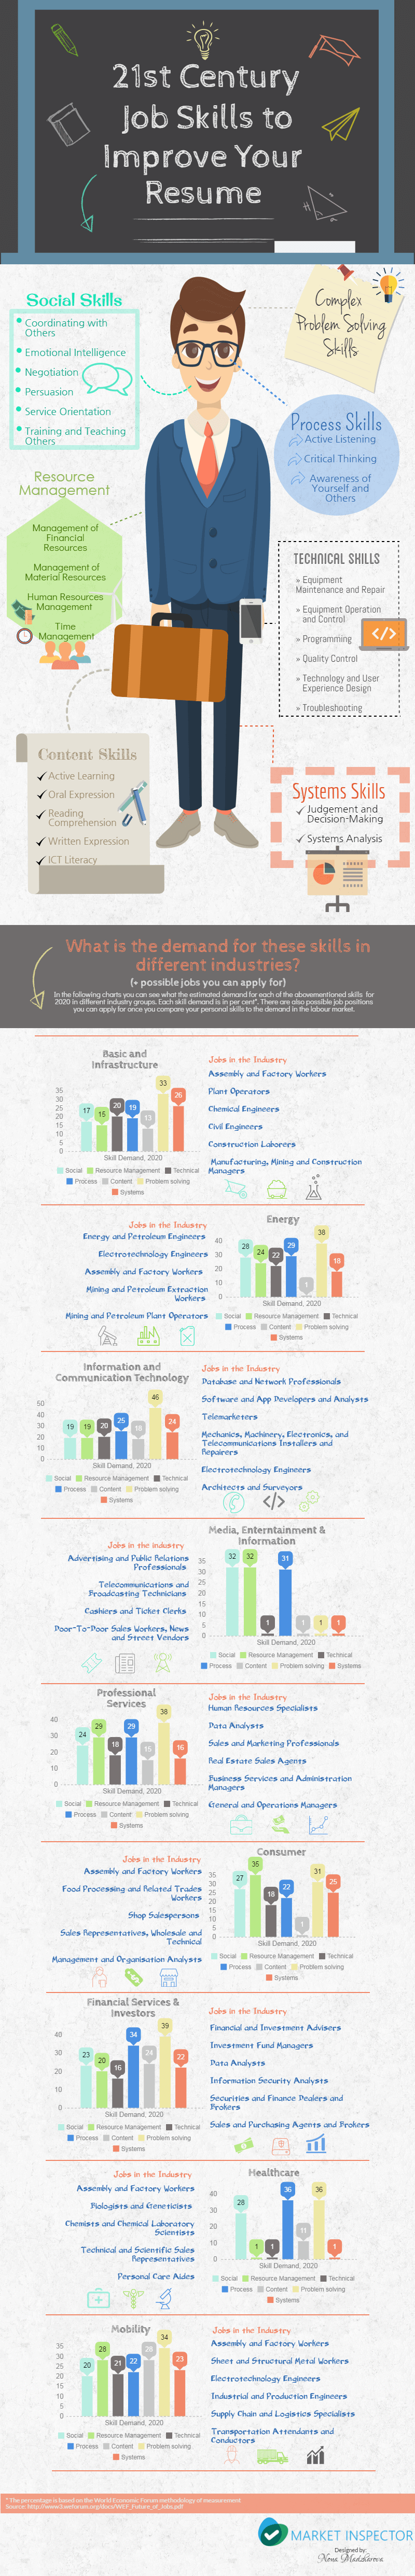 21st Century Job Skills to Improve Your Resume | Market-Inspector